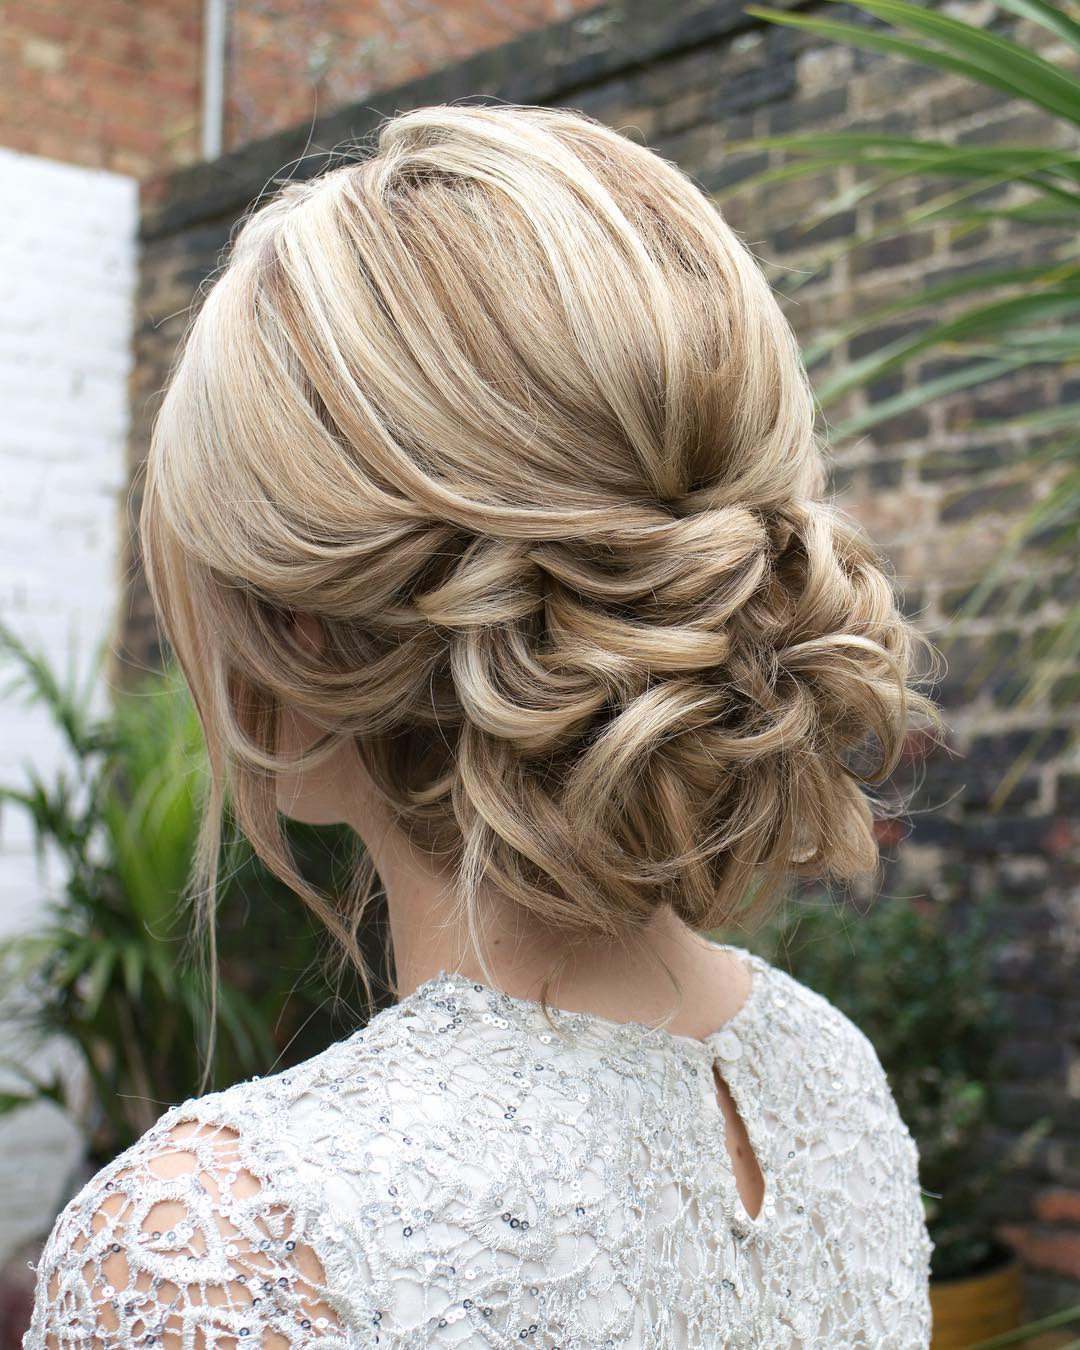 Most Popular Wedding Hairstyles: 10 Gorgeous Prom Updos For Long Hair, Prom Updo Hairstyles